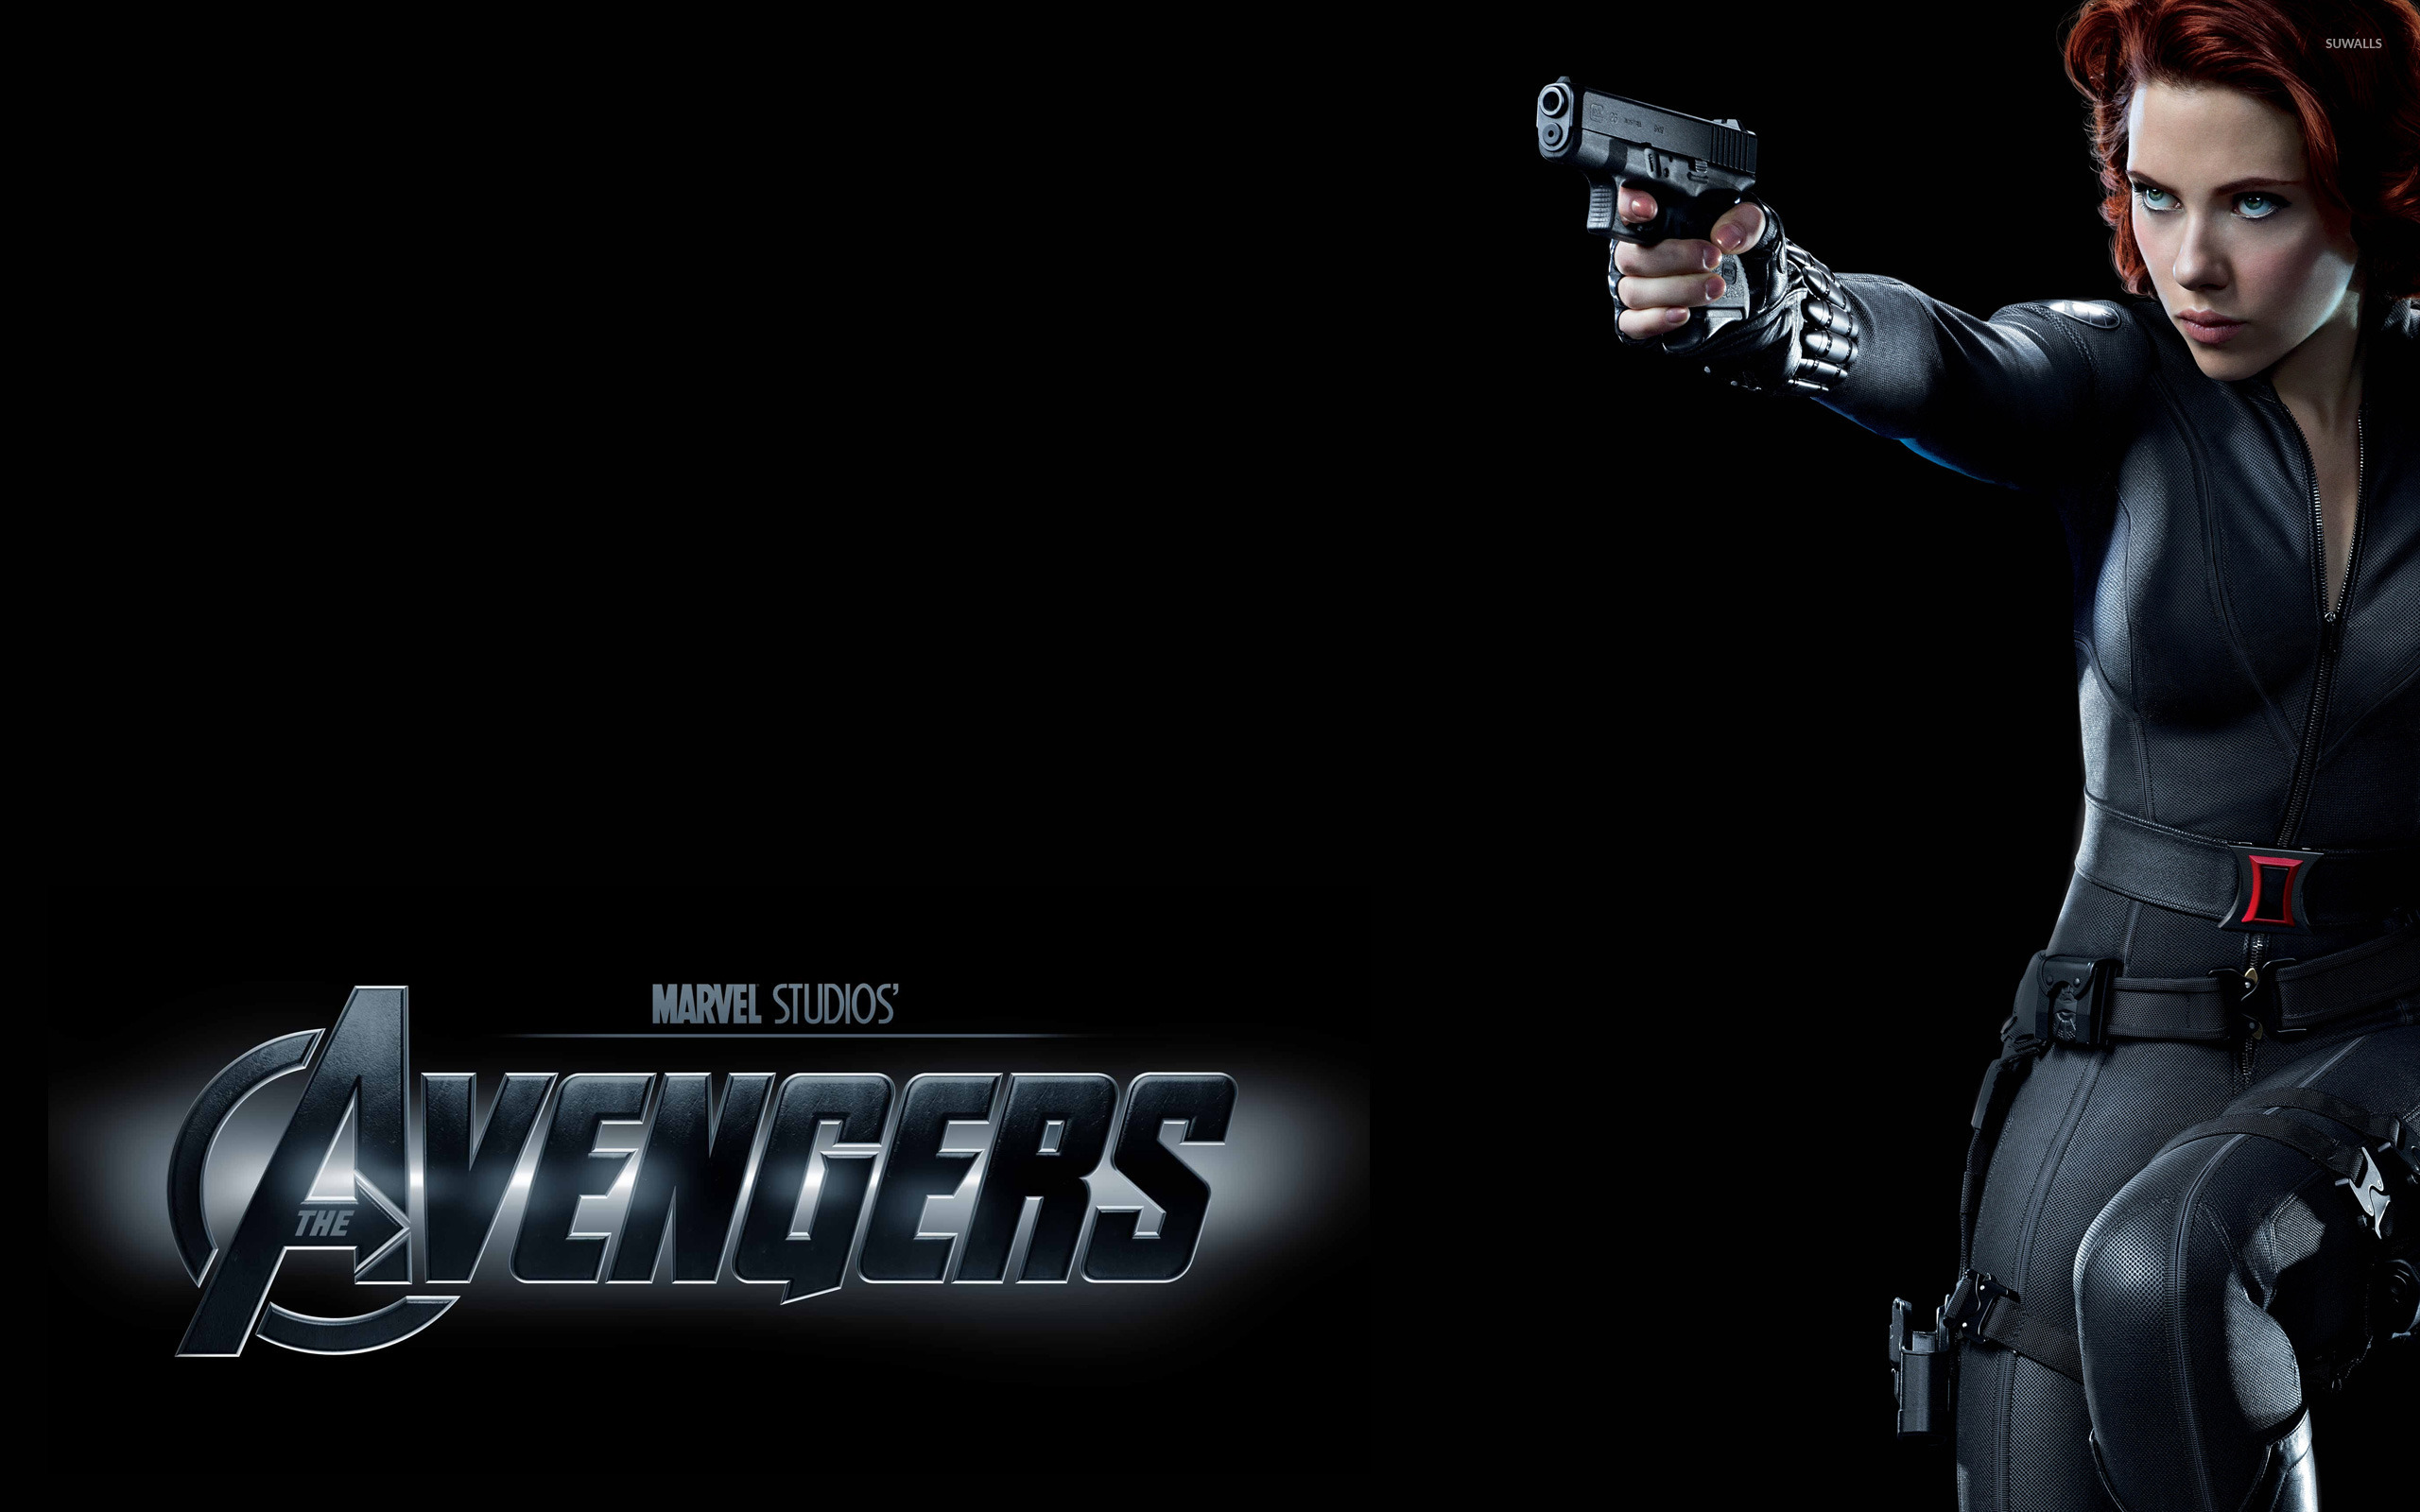 Black Widow   The Avengers wallpaper   Movie wallpapers   10843 2560x1600